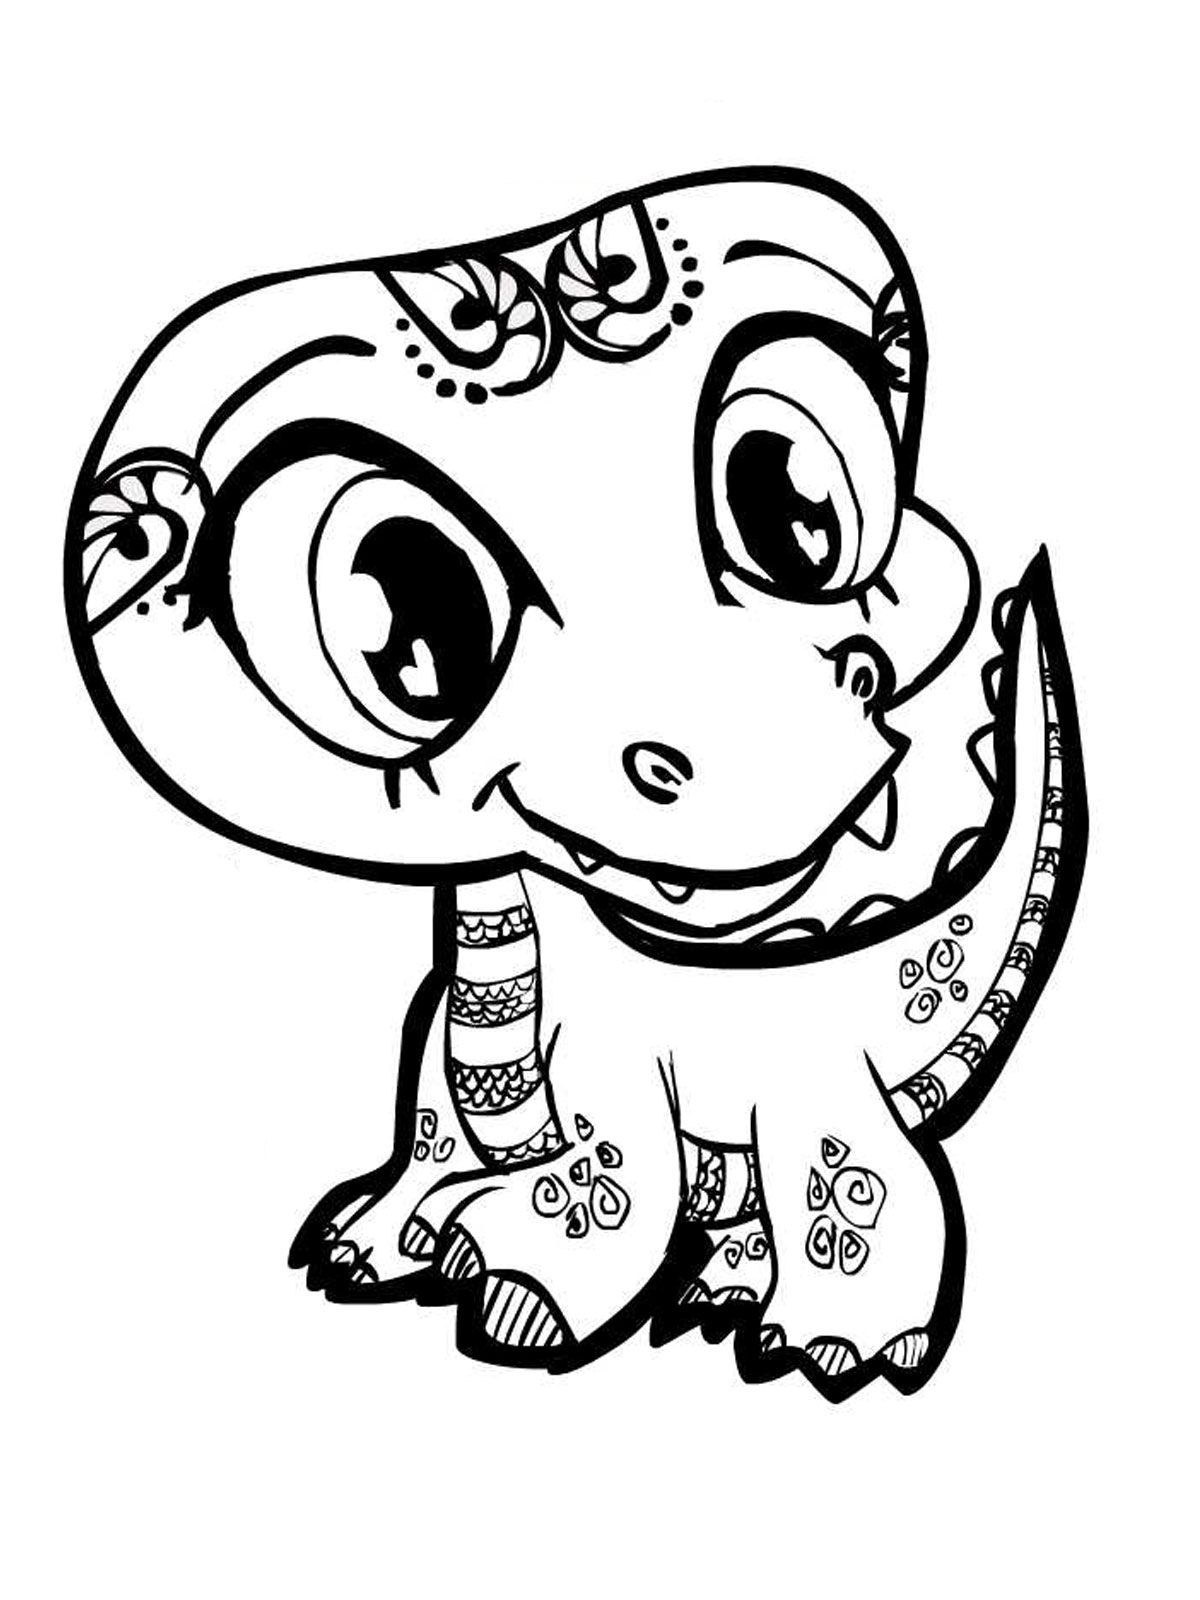 Cute smiling alligator kids coloring pages realisticcoloringpages com